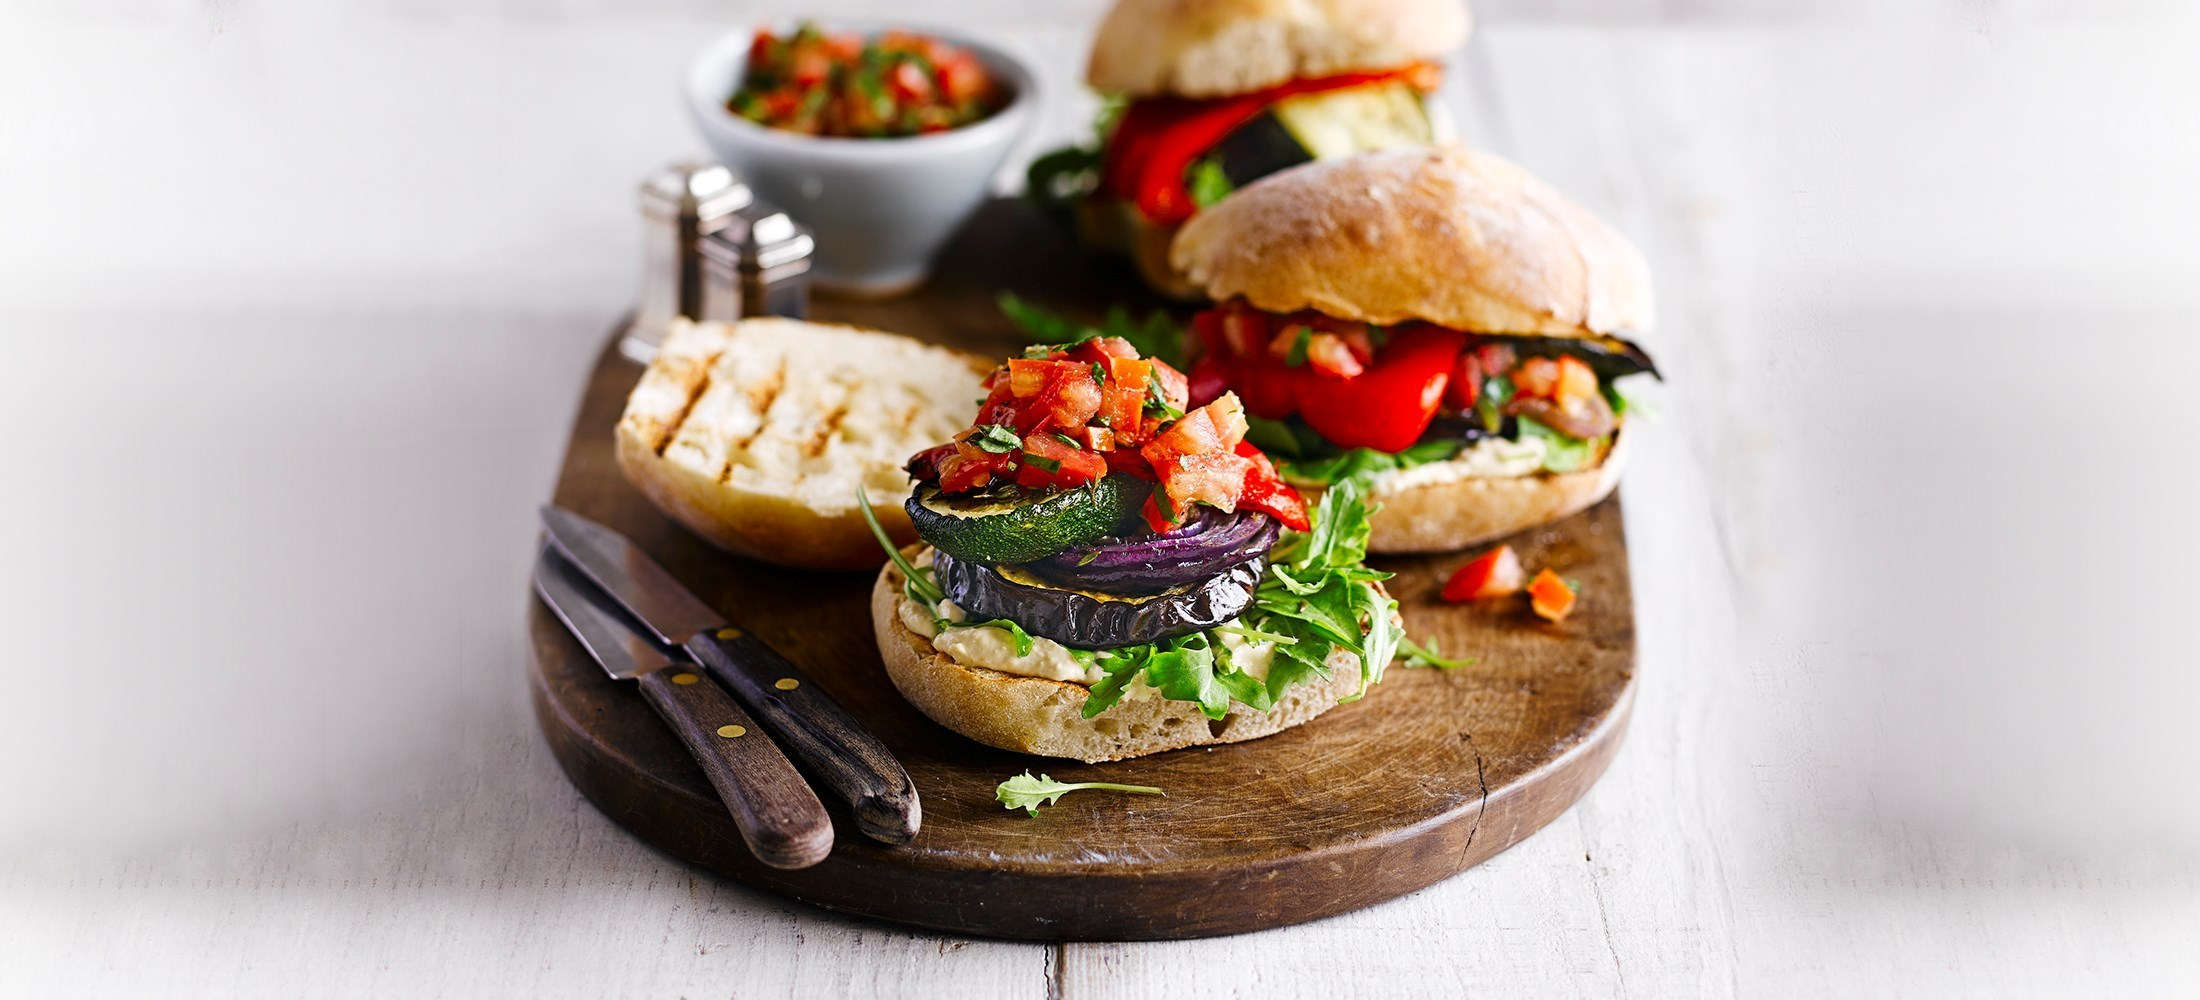 Quick vegetarian recipes ready in 30 minutes east vegetarian meals quick vegetarian recipes ready in under 30 minutes allotment burgers forumfinder Image collections